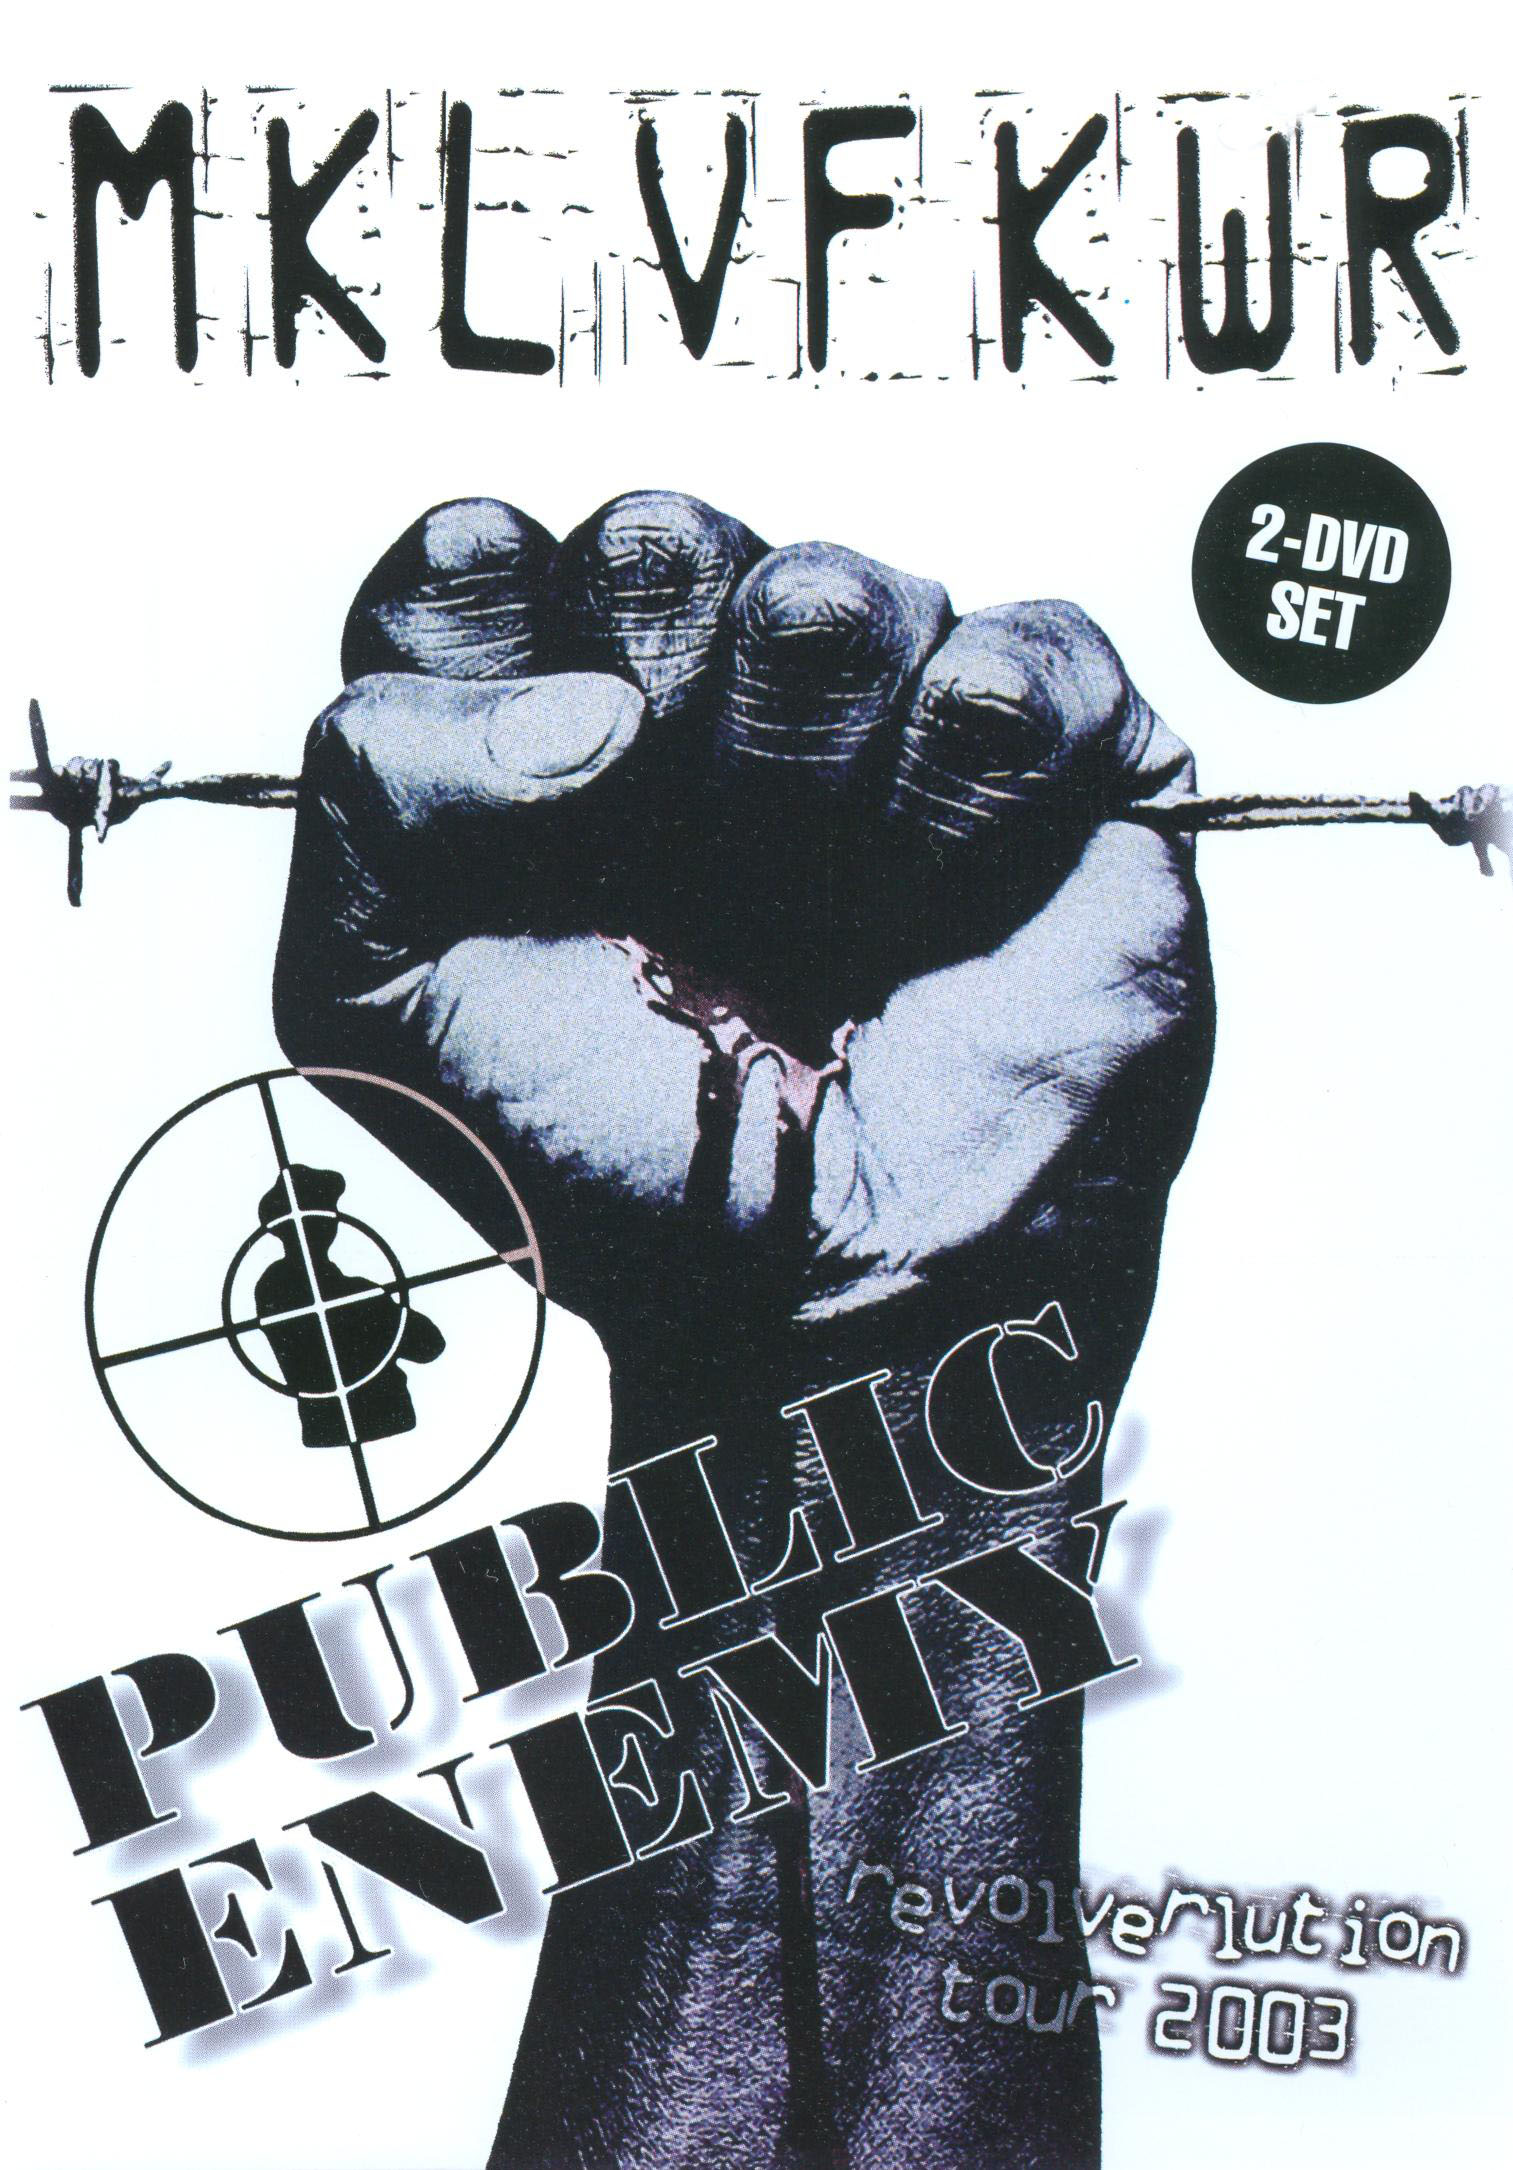 Public Enemy: Revolverlution Tour 2003 - Melbourne, Australia